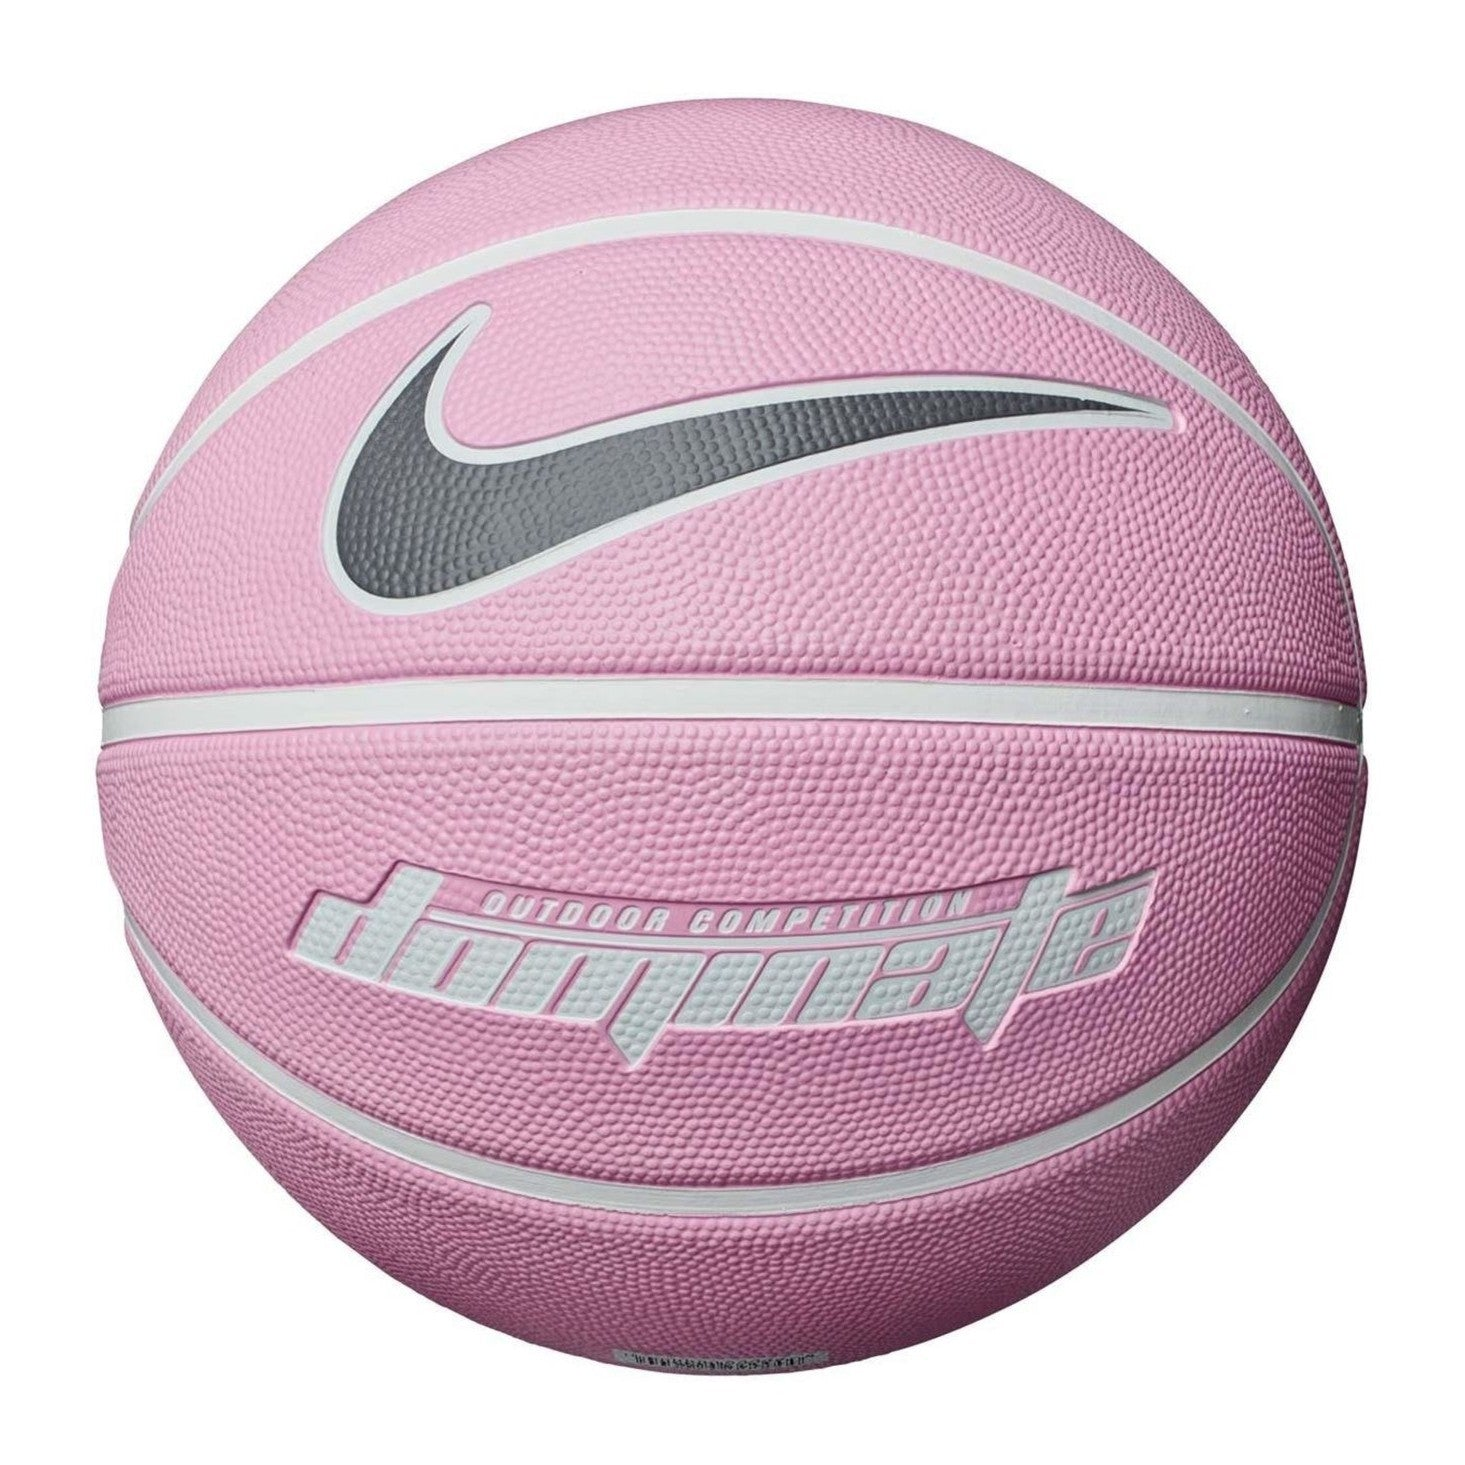 Nike Dominate 8 Panel Basketball - Size 6 - Pink Rise/White/Gunsmoke Grey